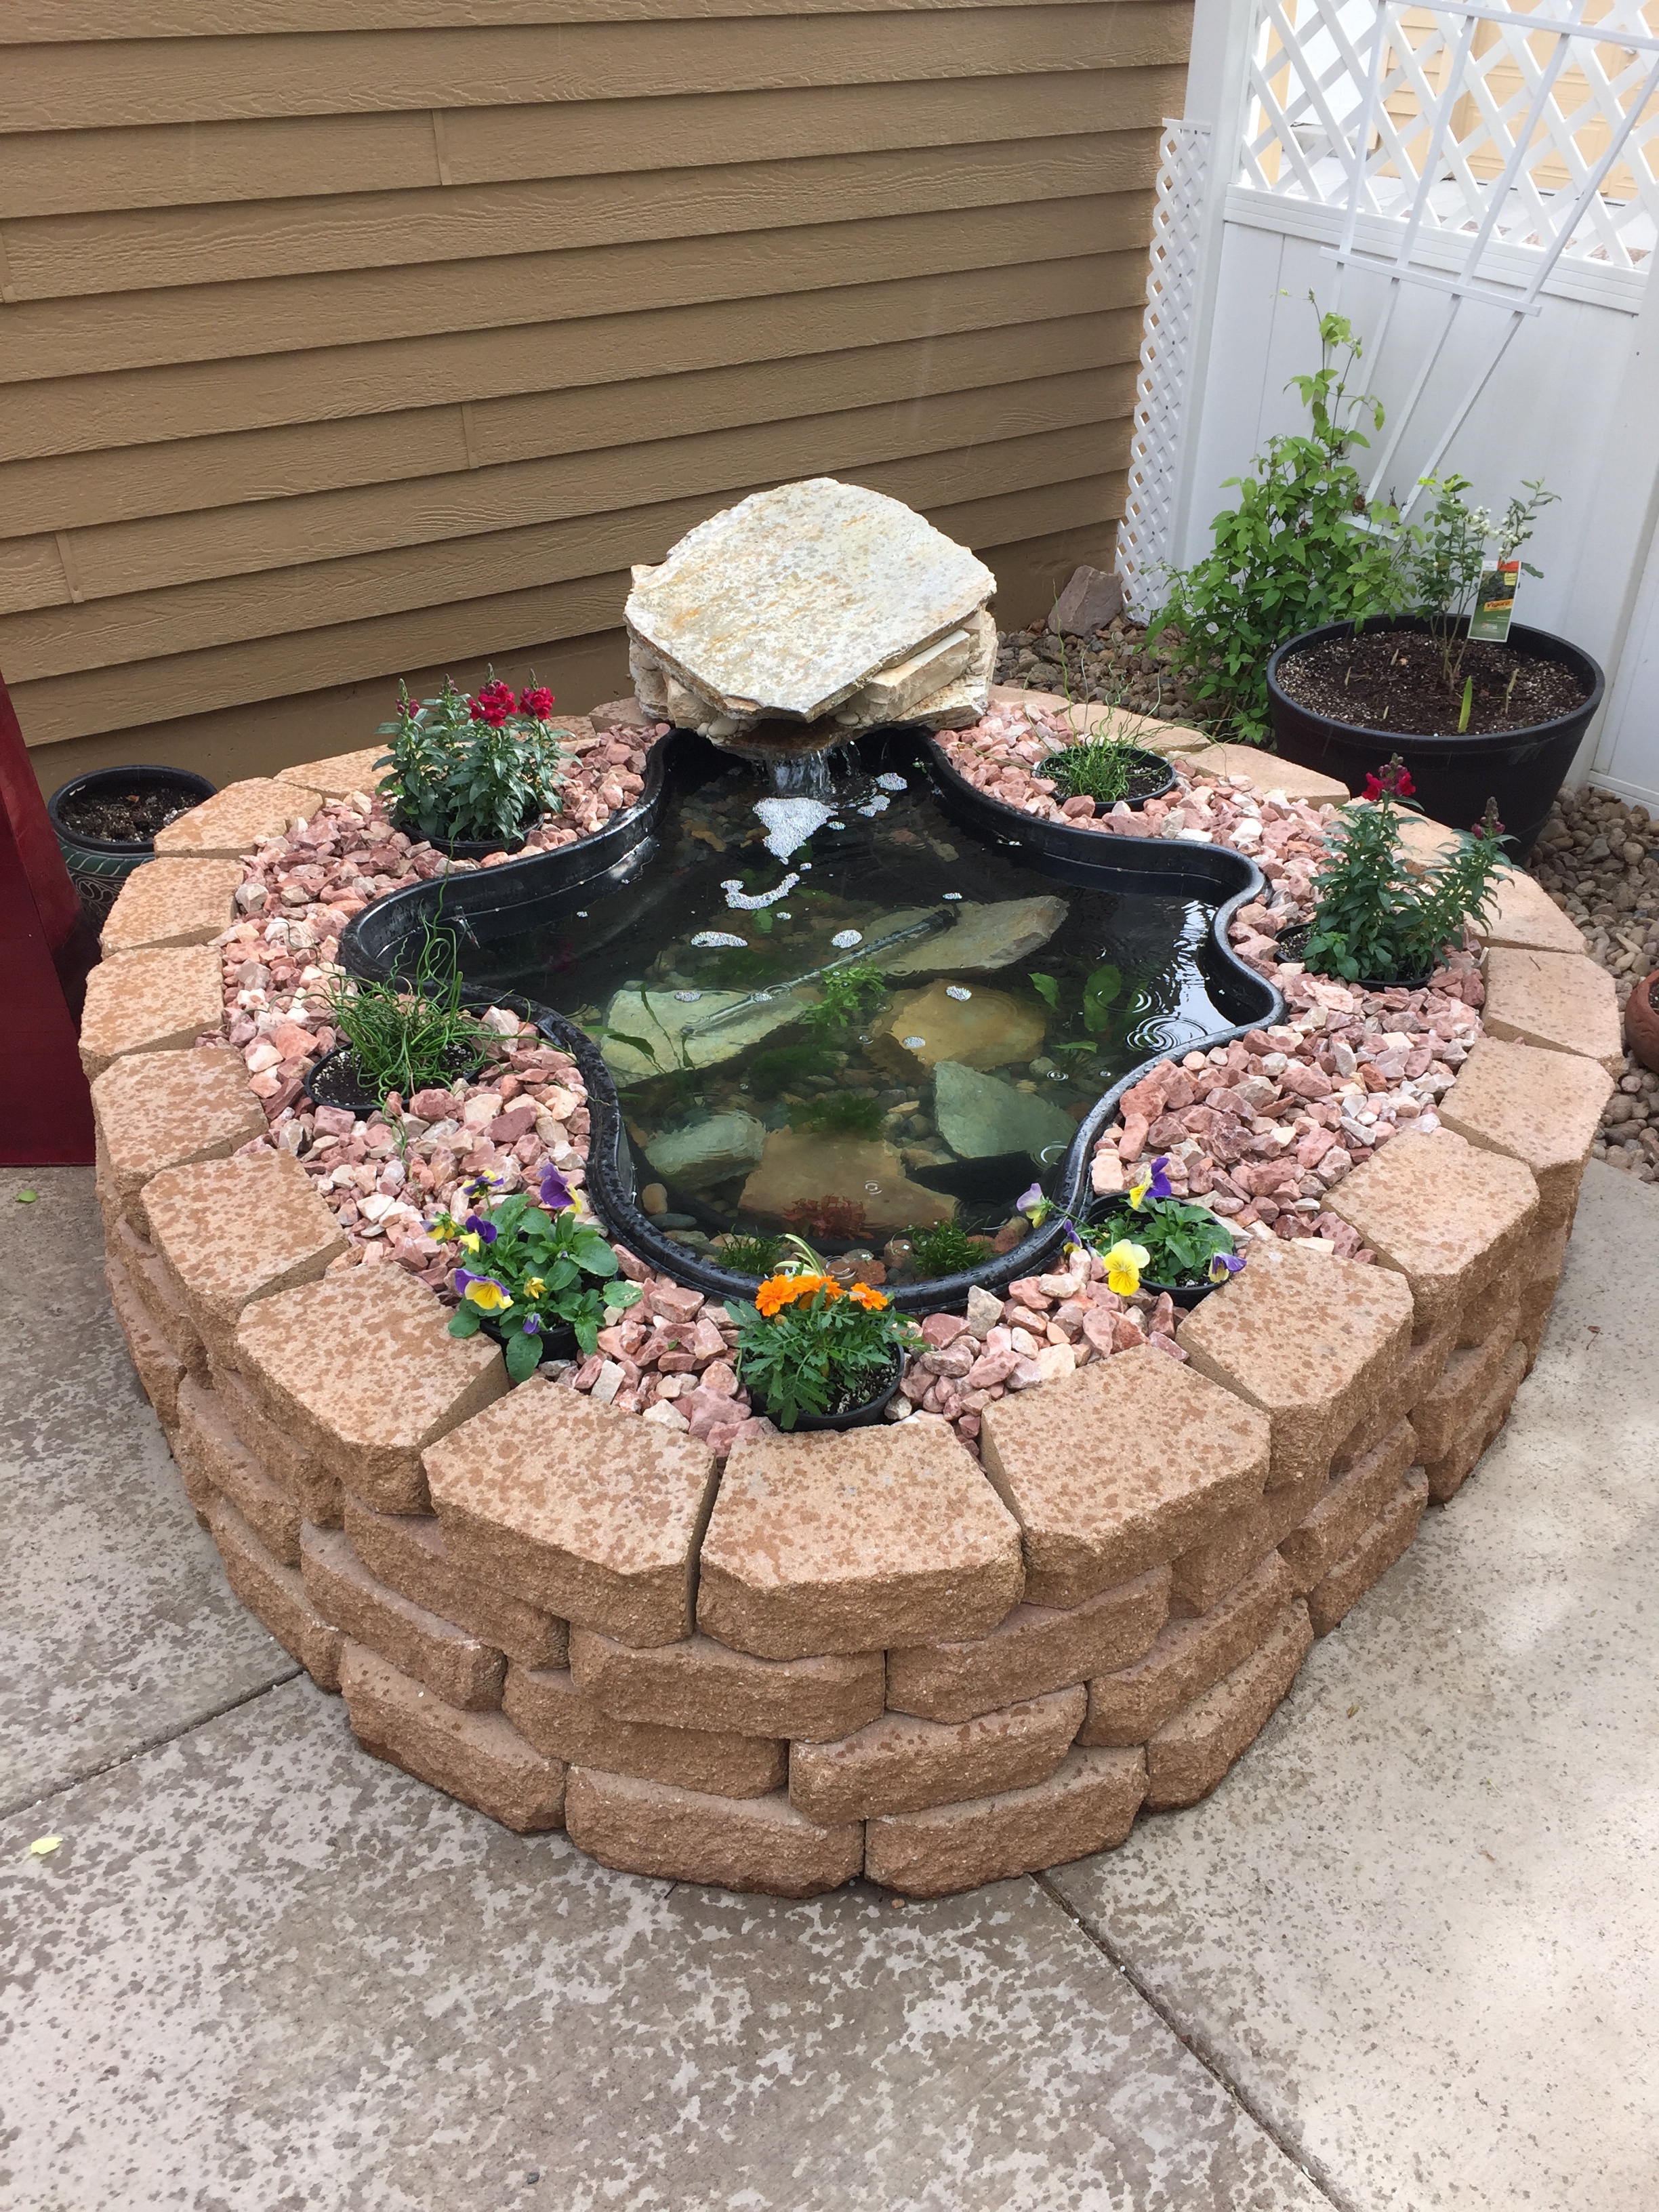 67 cool backyard pond design ideas digsdigs for Fish for small outdoor pond